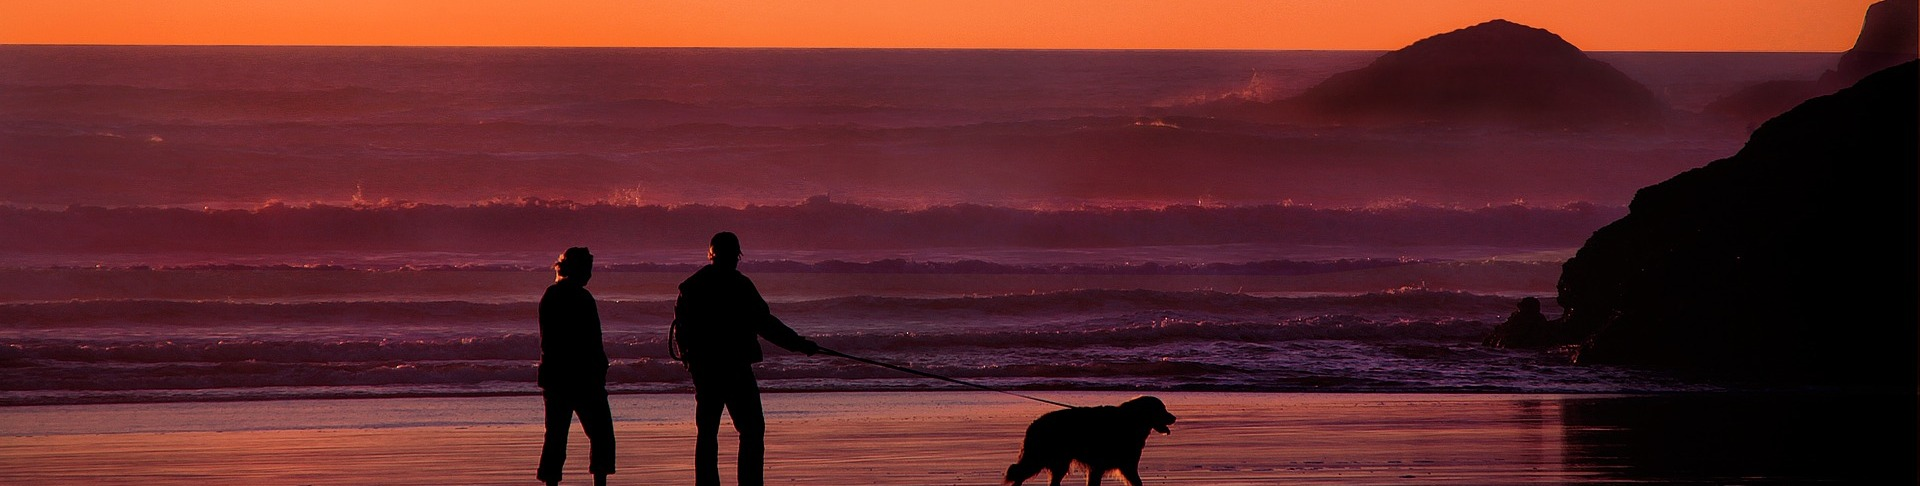 Grandparents walking dog on beach - BioSuperfood supports healthy aging and longevity